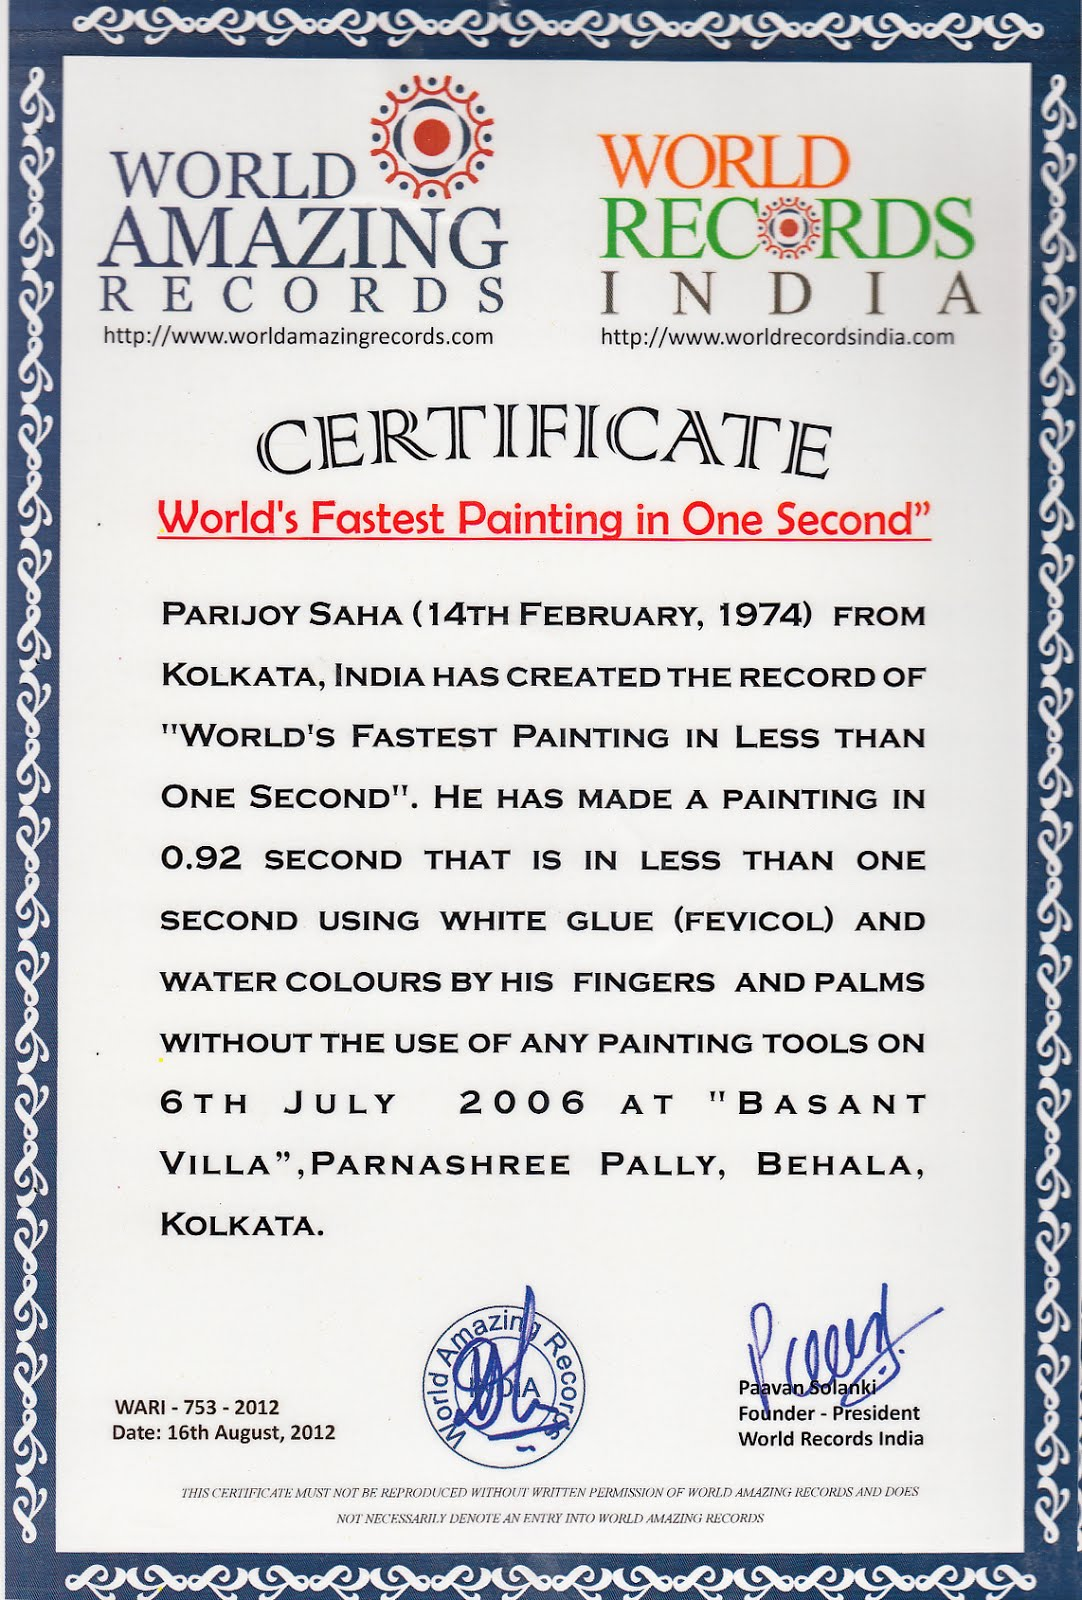 World Record Certificate World's Fastest Painting